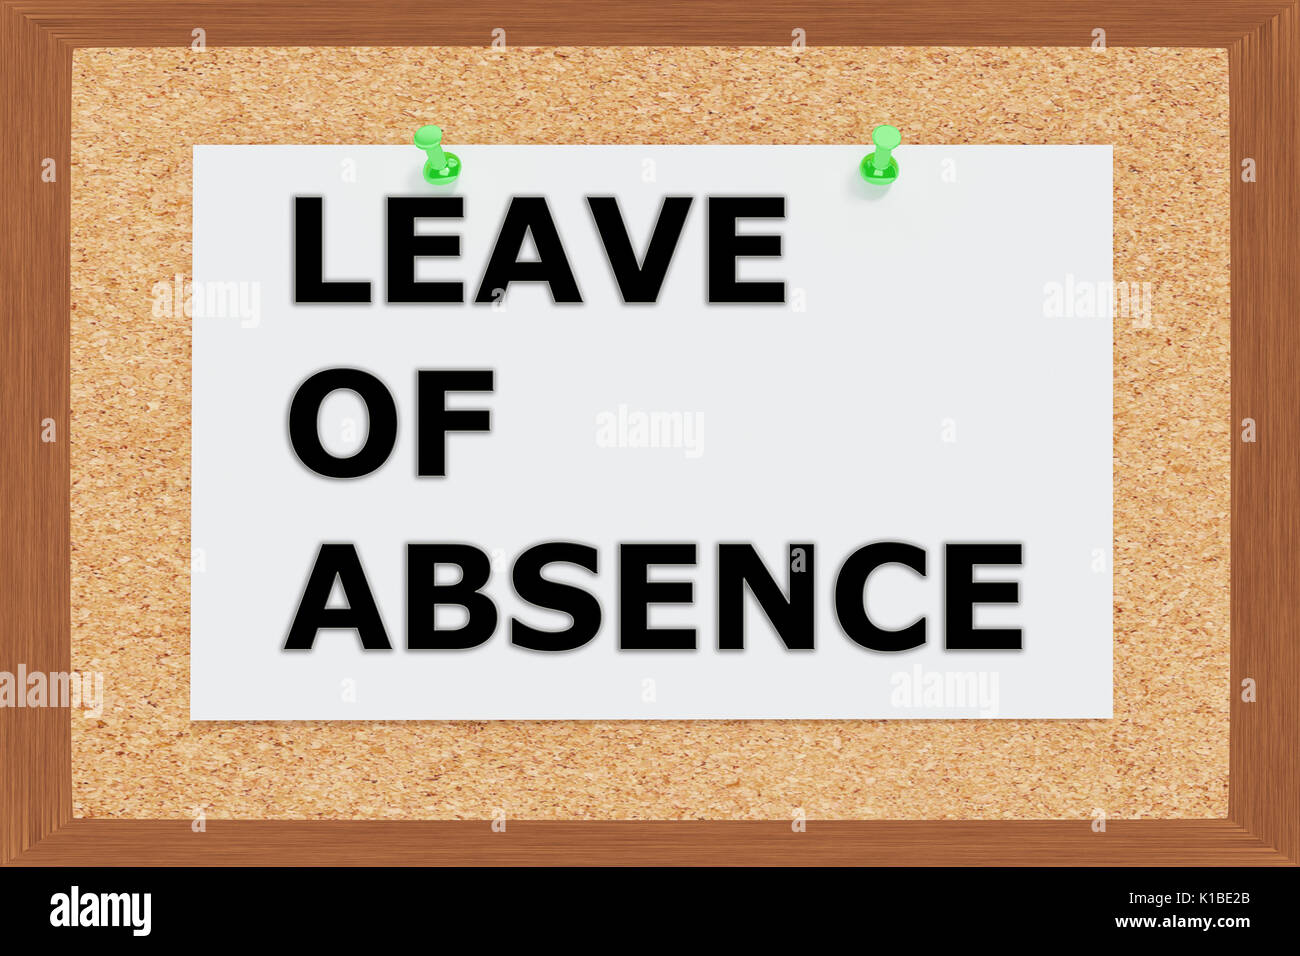 how to obtain a leave of absence from work